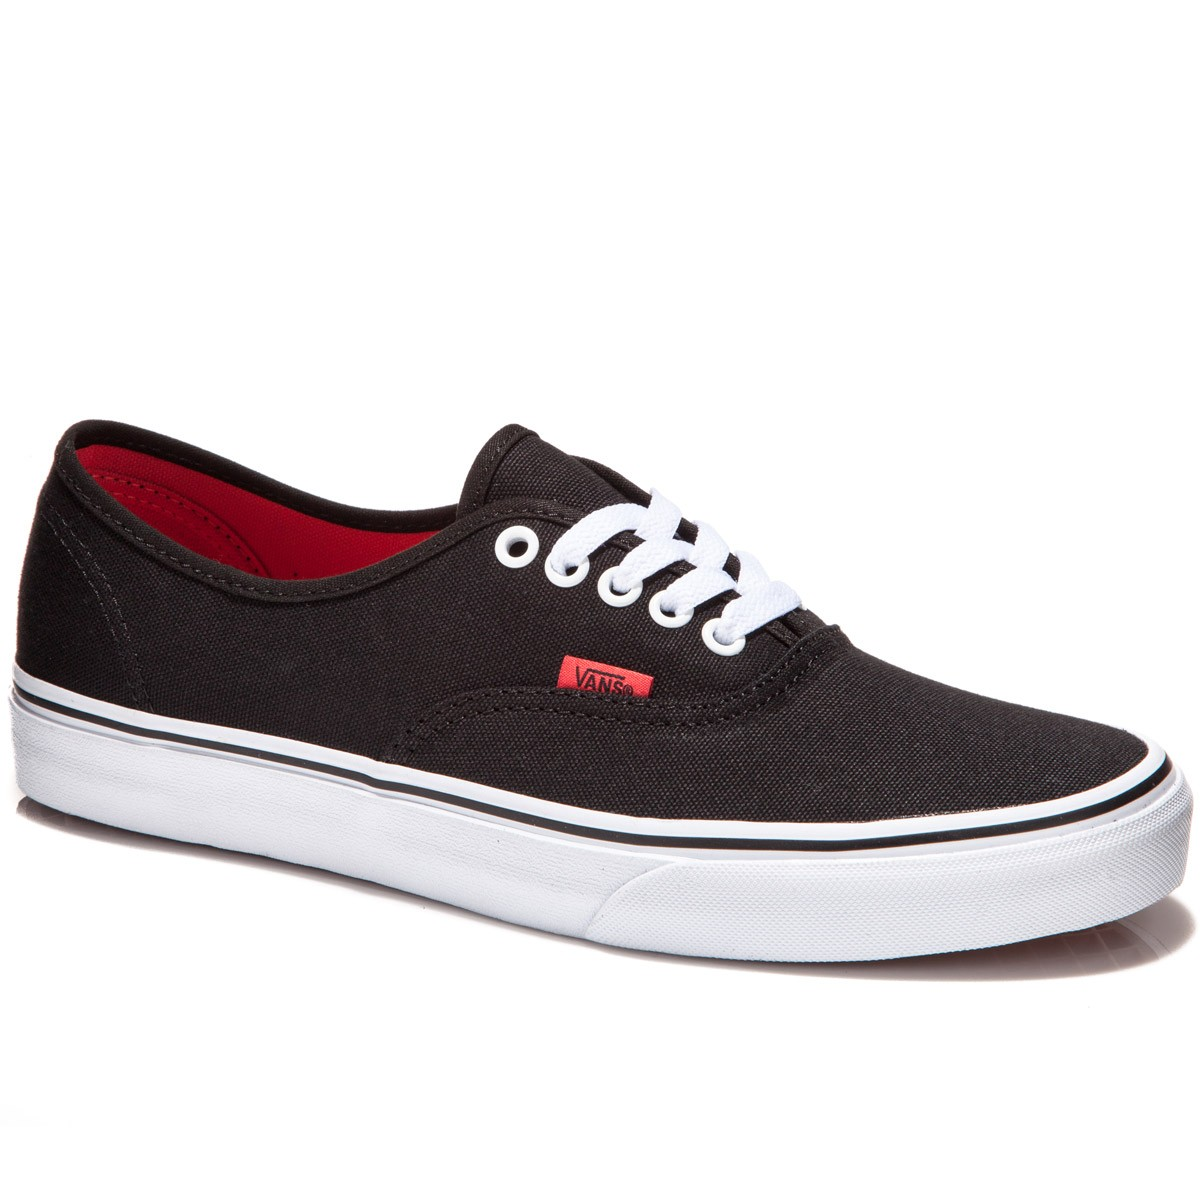 Vans Original Authentic Shoes - Pop Black/Bittersweet - 7.0